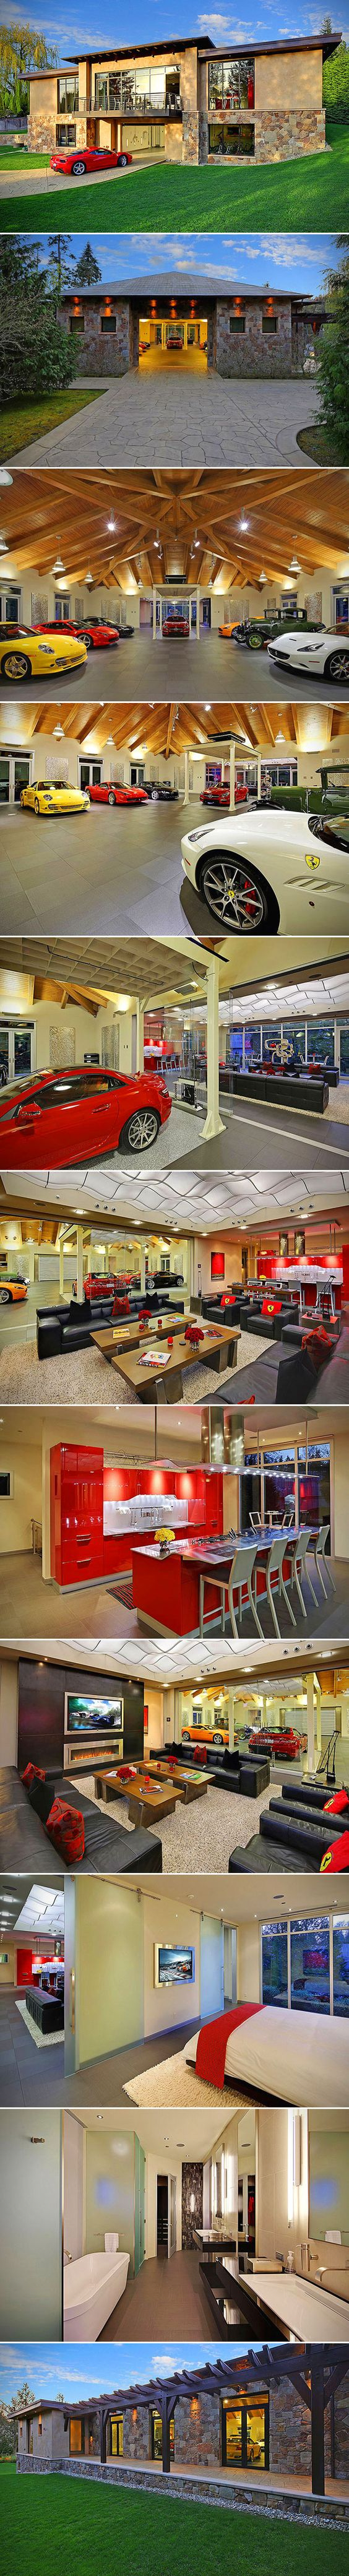 big garage for all my many cars dream house pinterest big garage for all my many cars dream house pinterest cars luxury garage and car garage